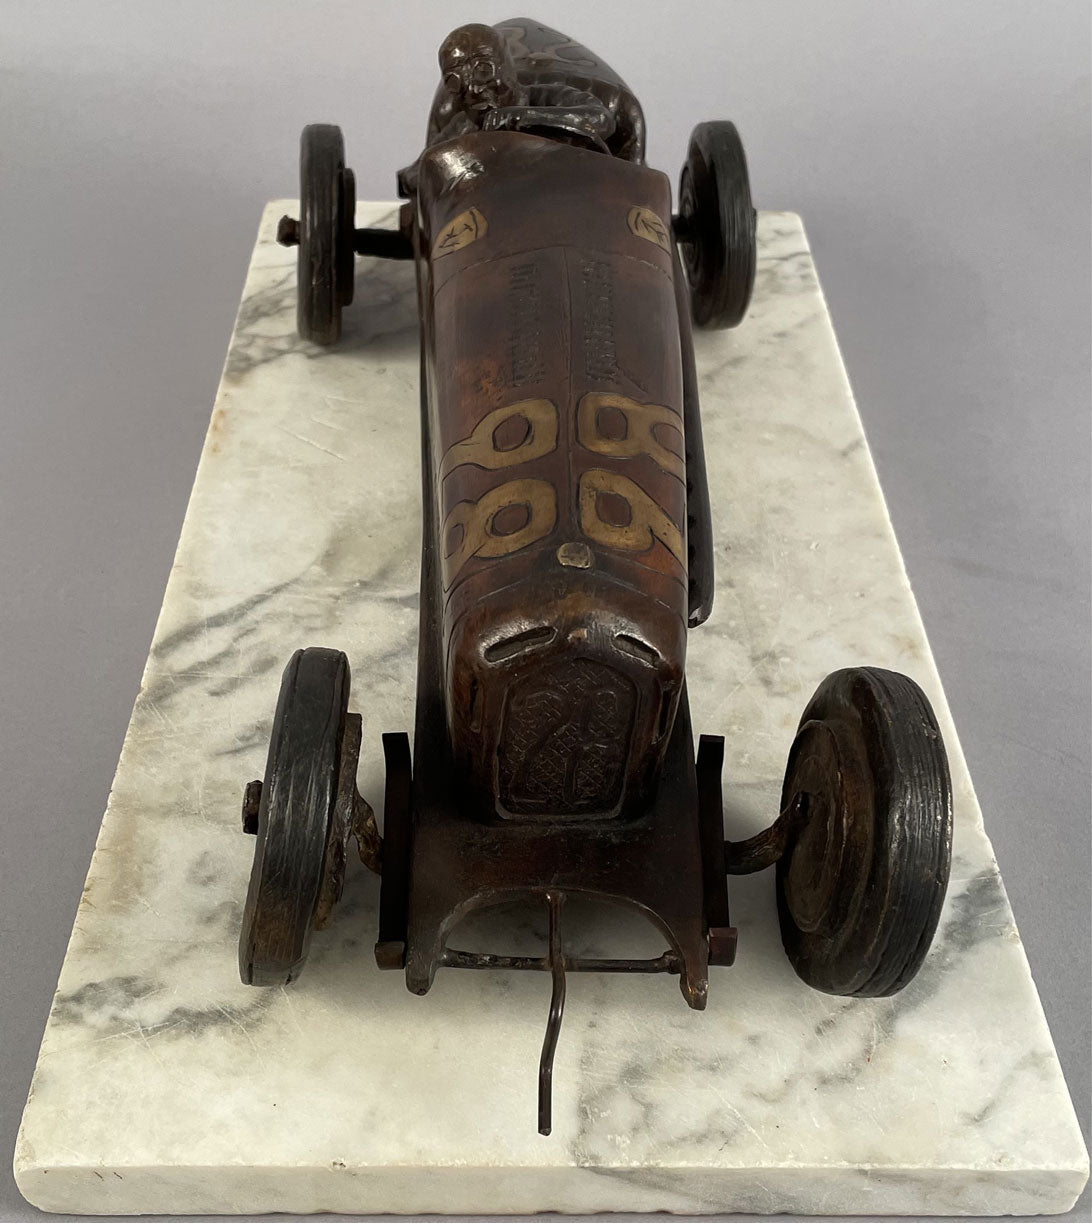 Tazio Nuvolari Alfa Romeo bronze sculpture by Gordon Chism, 1992